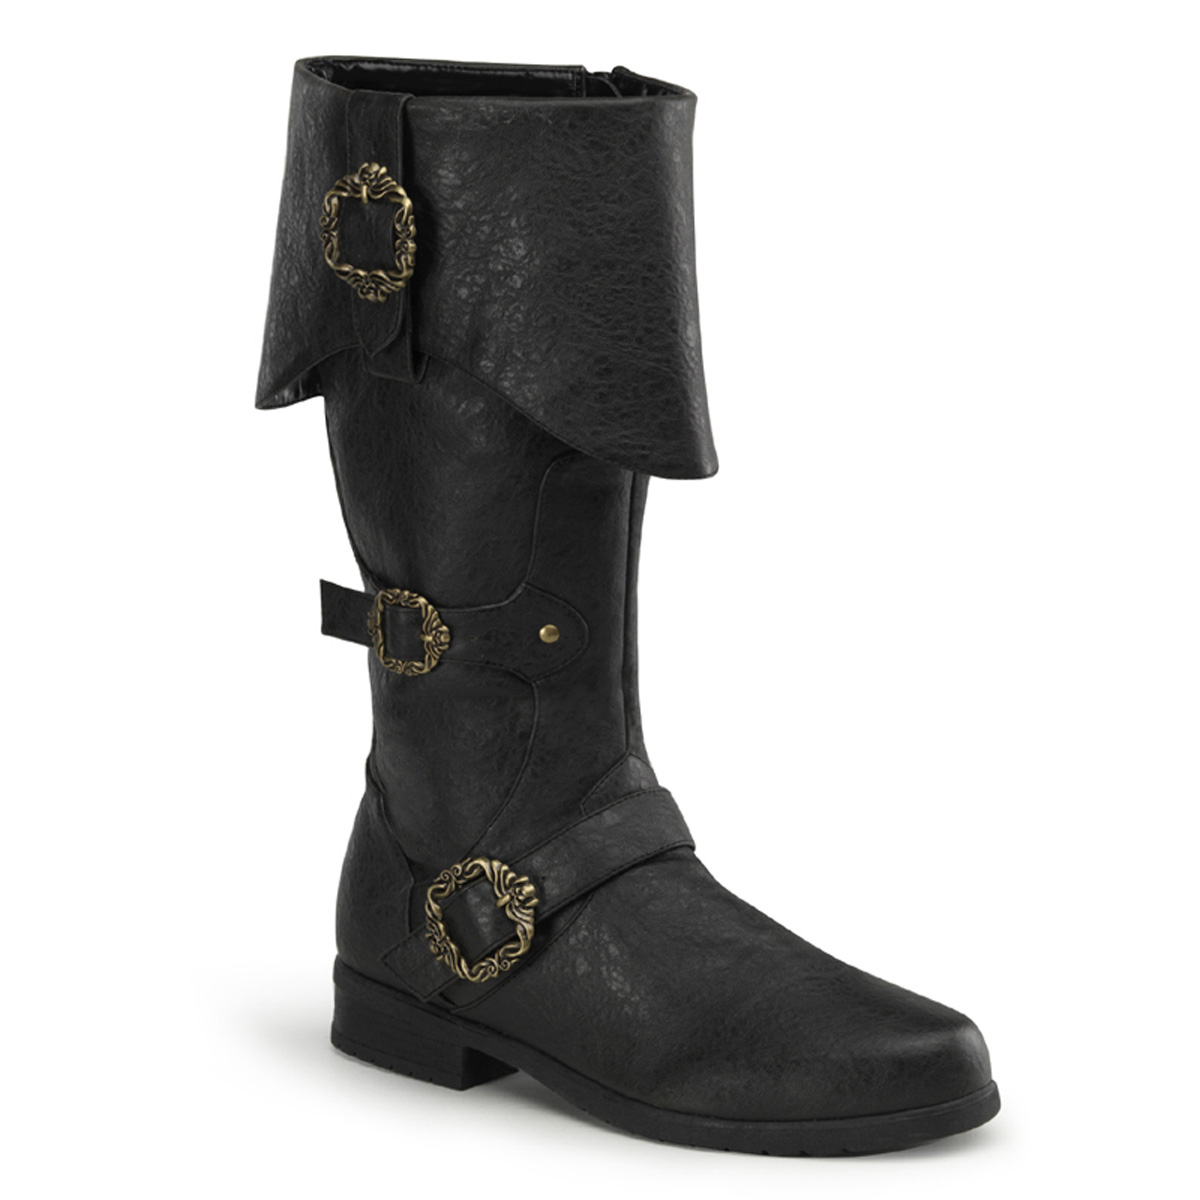 Pleaser Carribean-299 Mens Caribbean Pirate Halloween Costume Boots at Sears.com